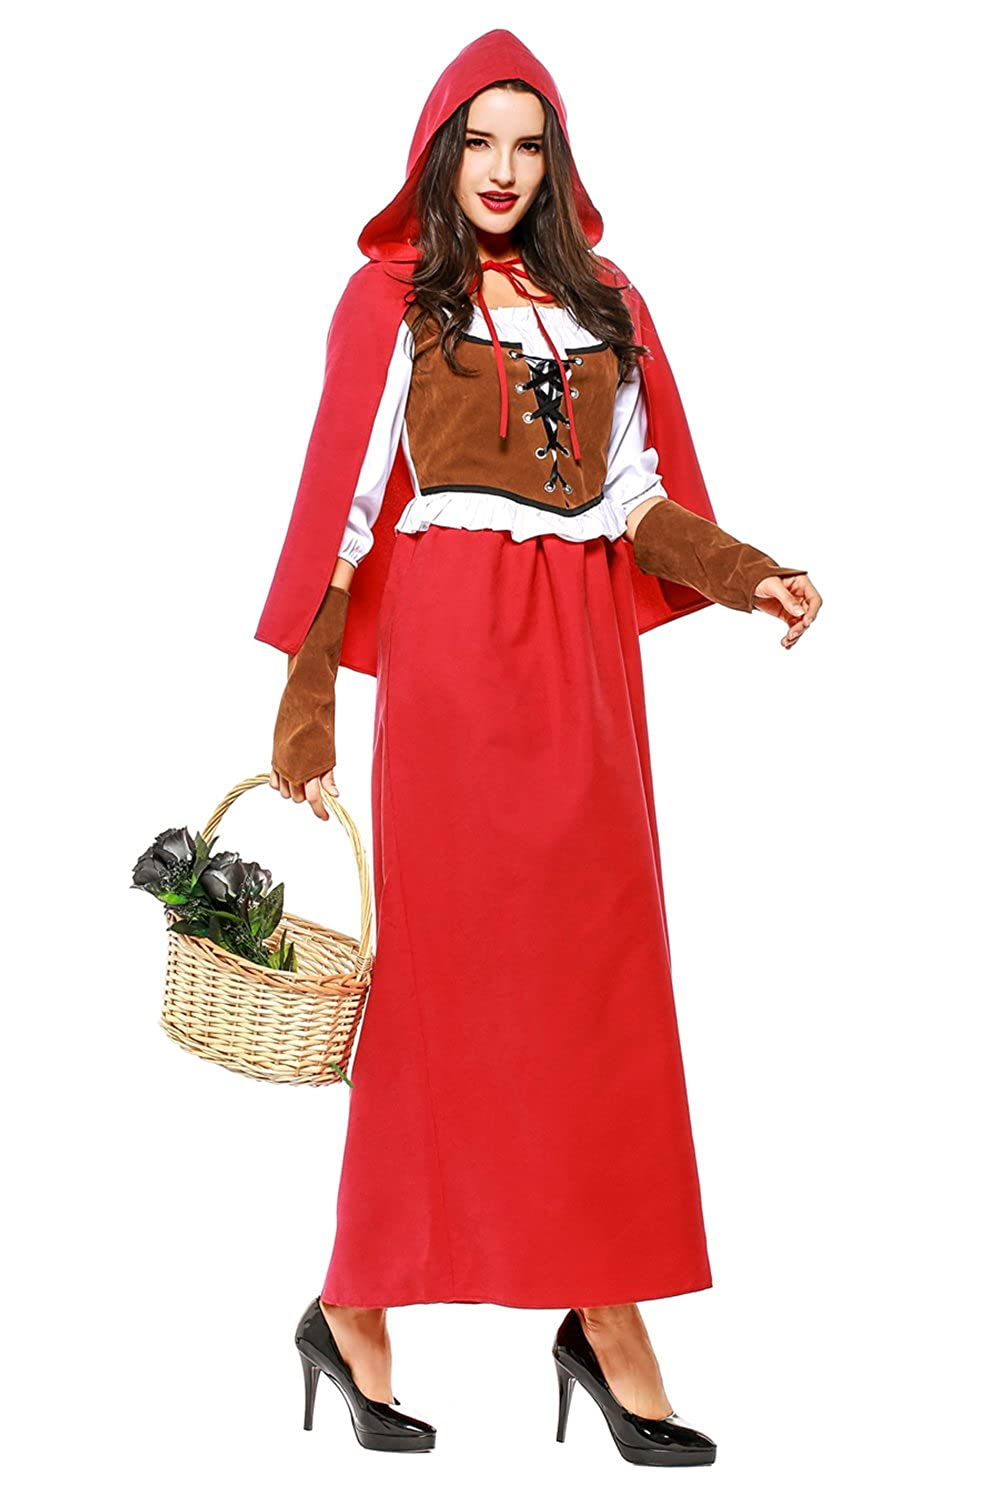 Piece can red riding hood cosplay long